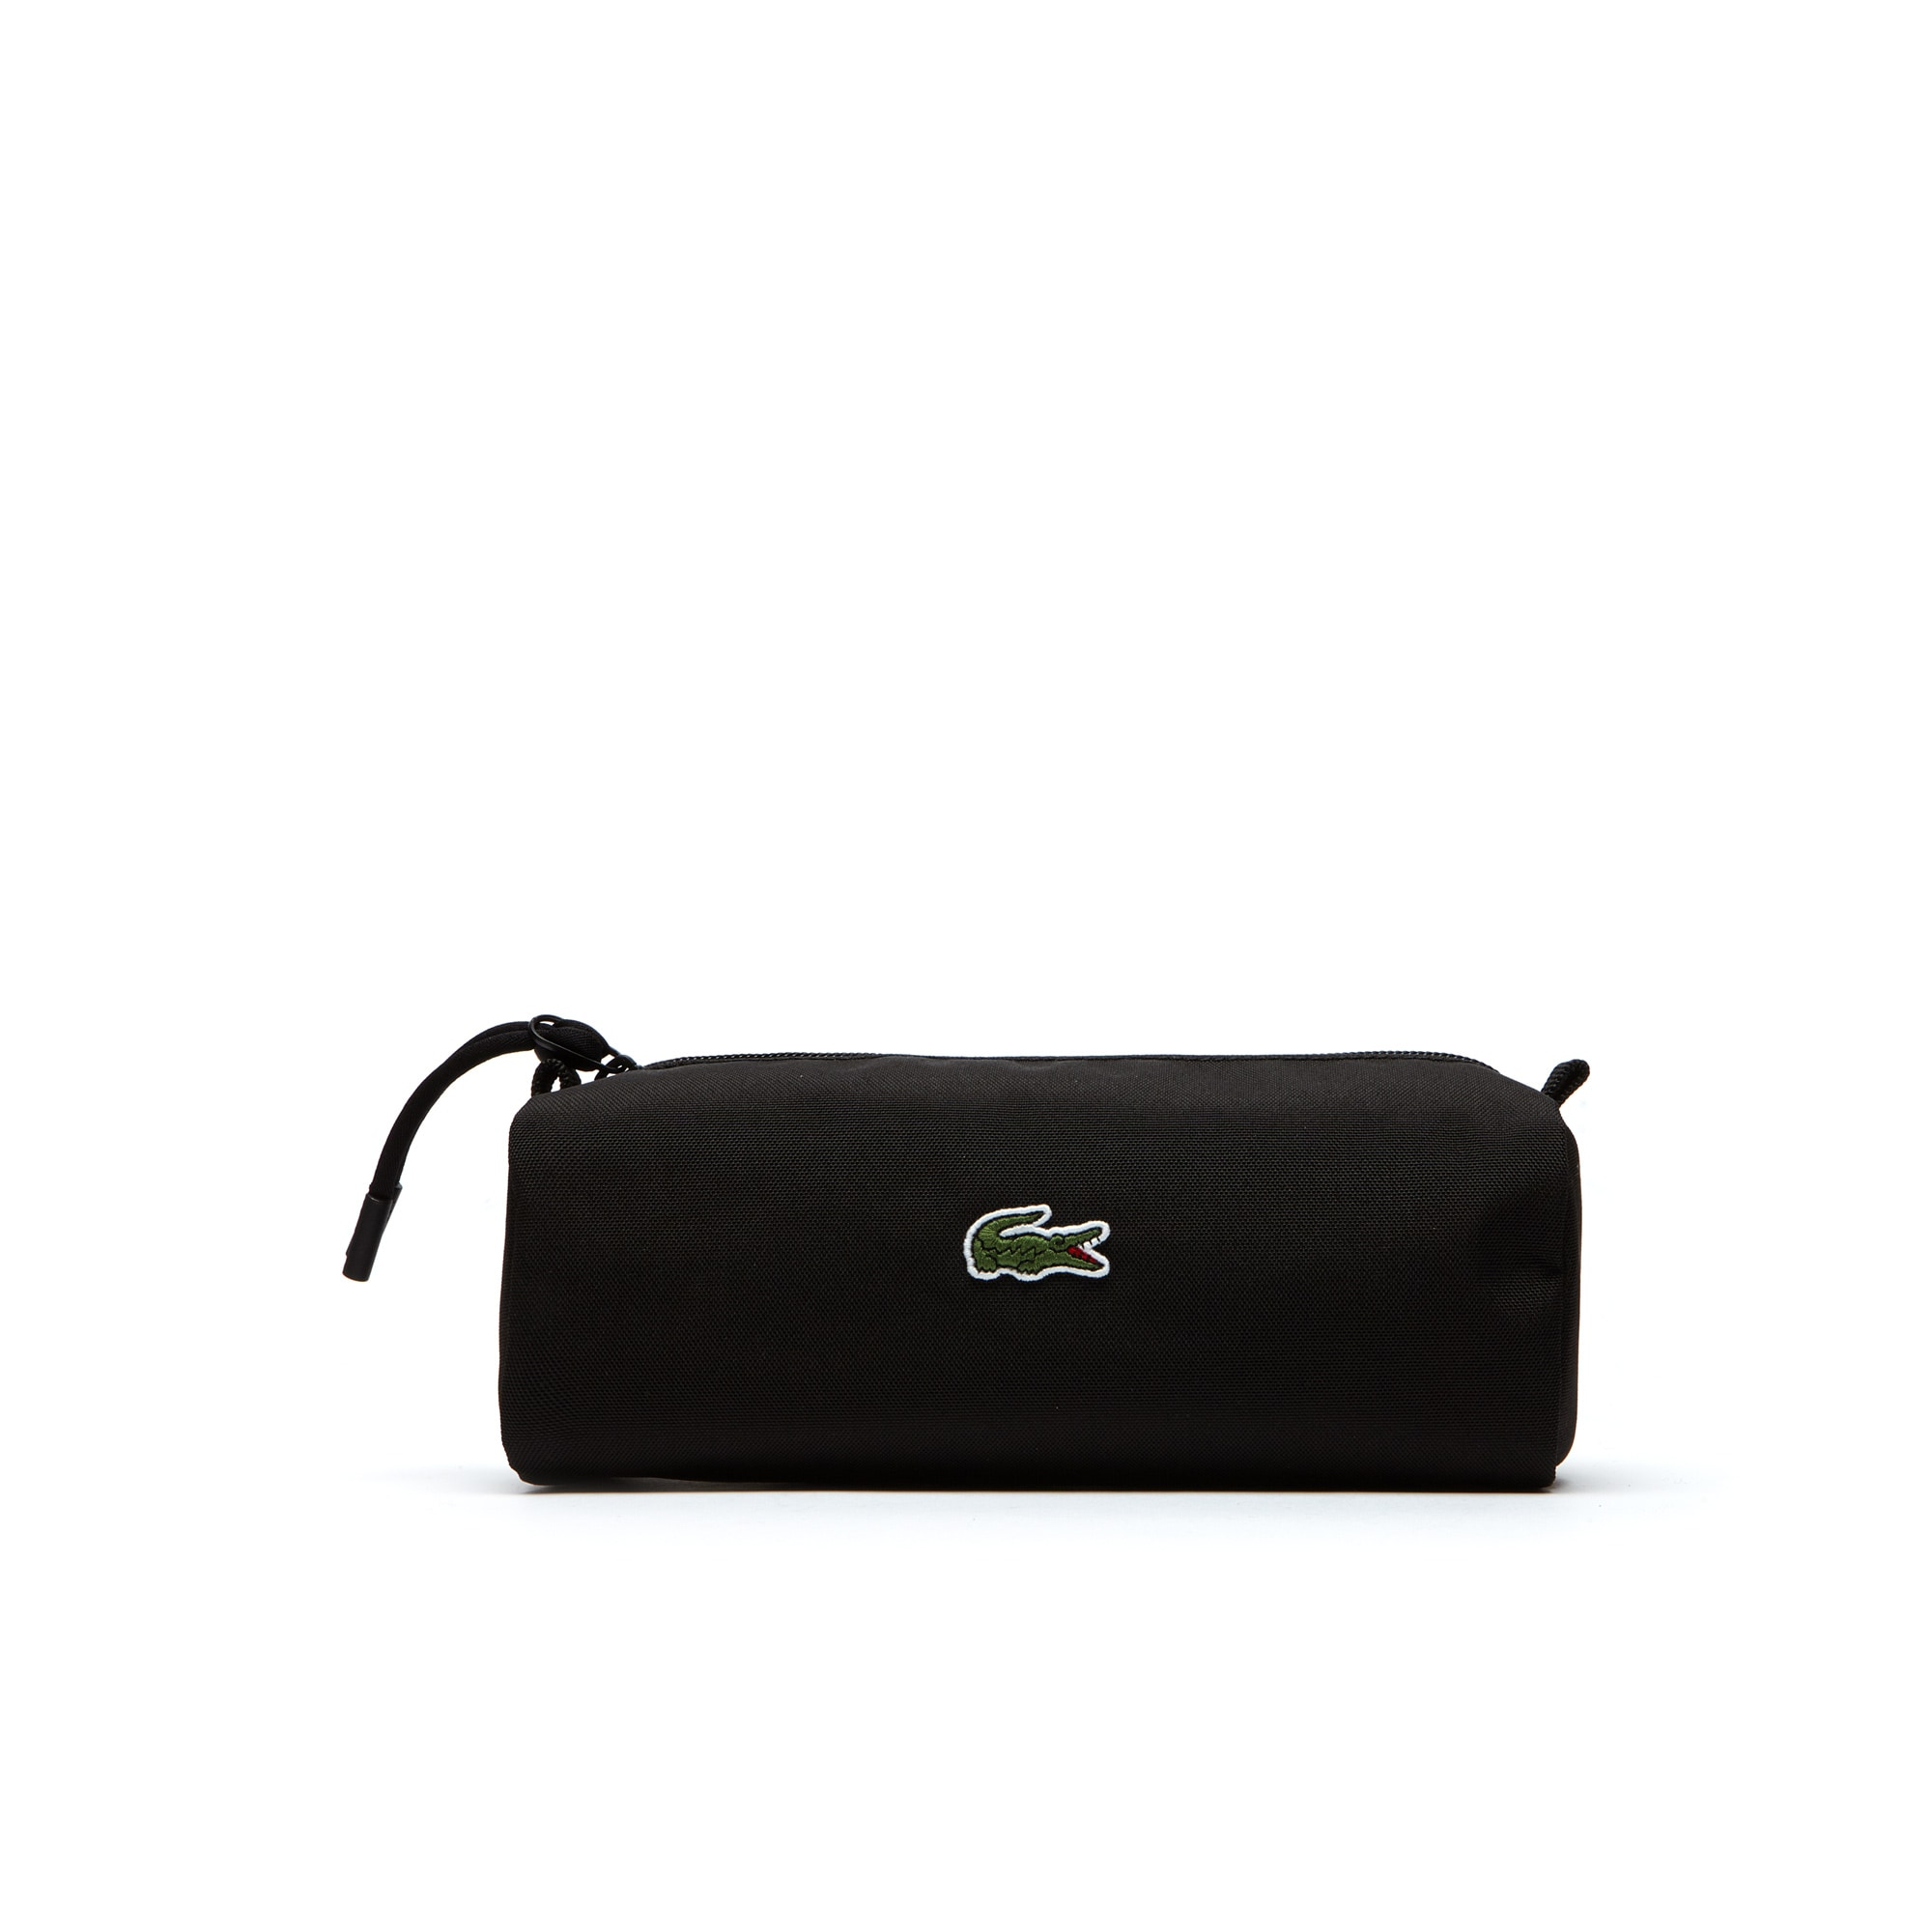 Men's Néocroc Monochrome Canvas Zip Pouch